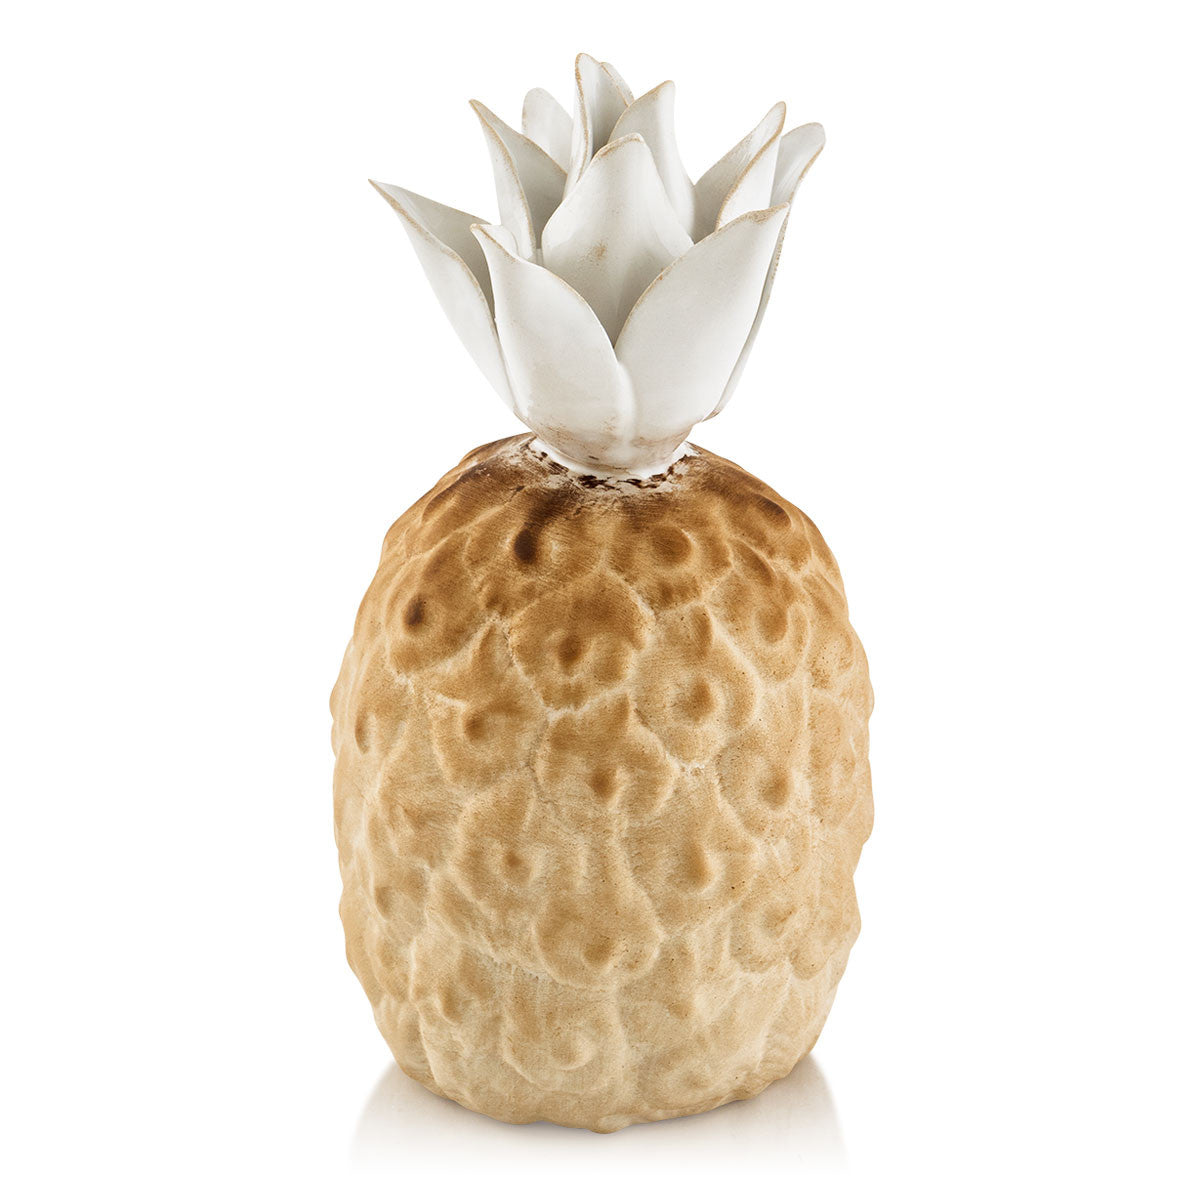 Hand-painted ceramic porcelain pineapple in white glaze and finished in brown natural